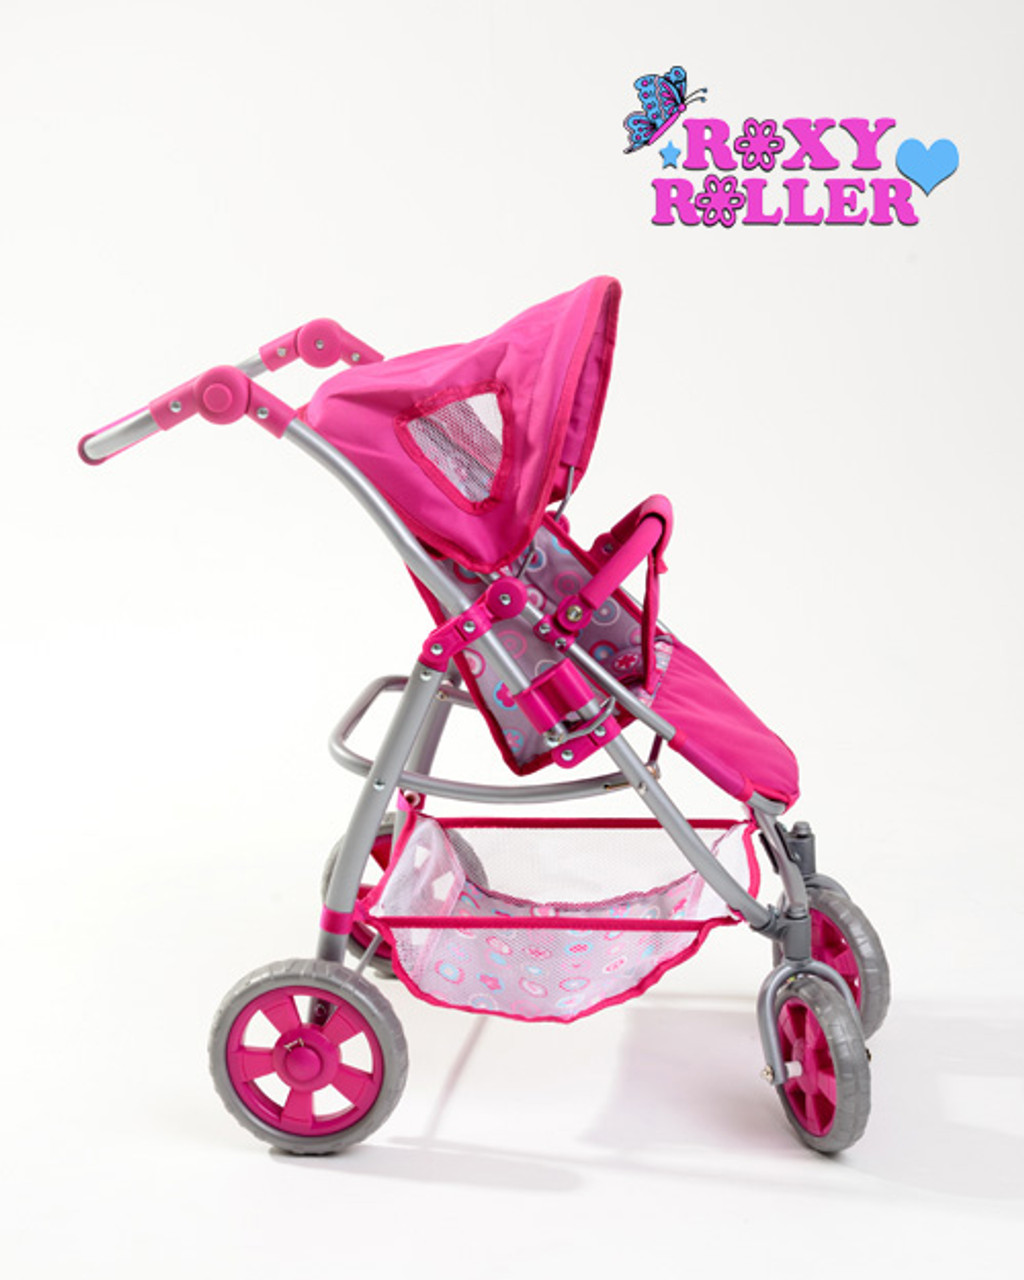 Roxy Roller 3-in-1 Dolls Pushchair Pram and Car Seat Travel System